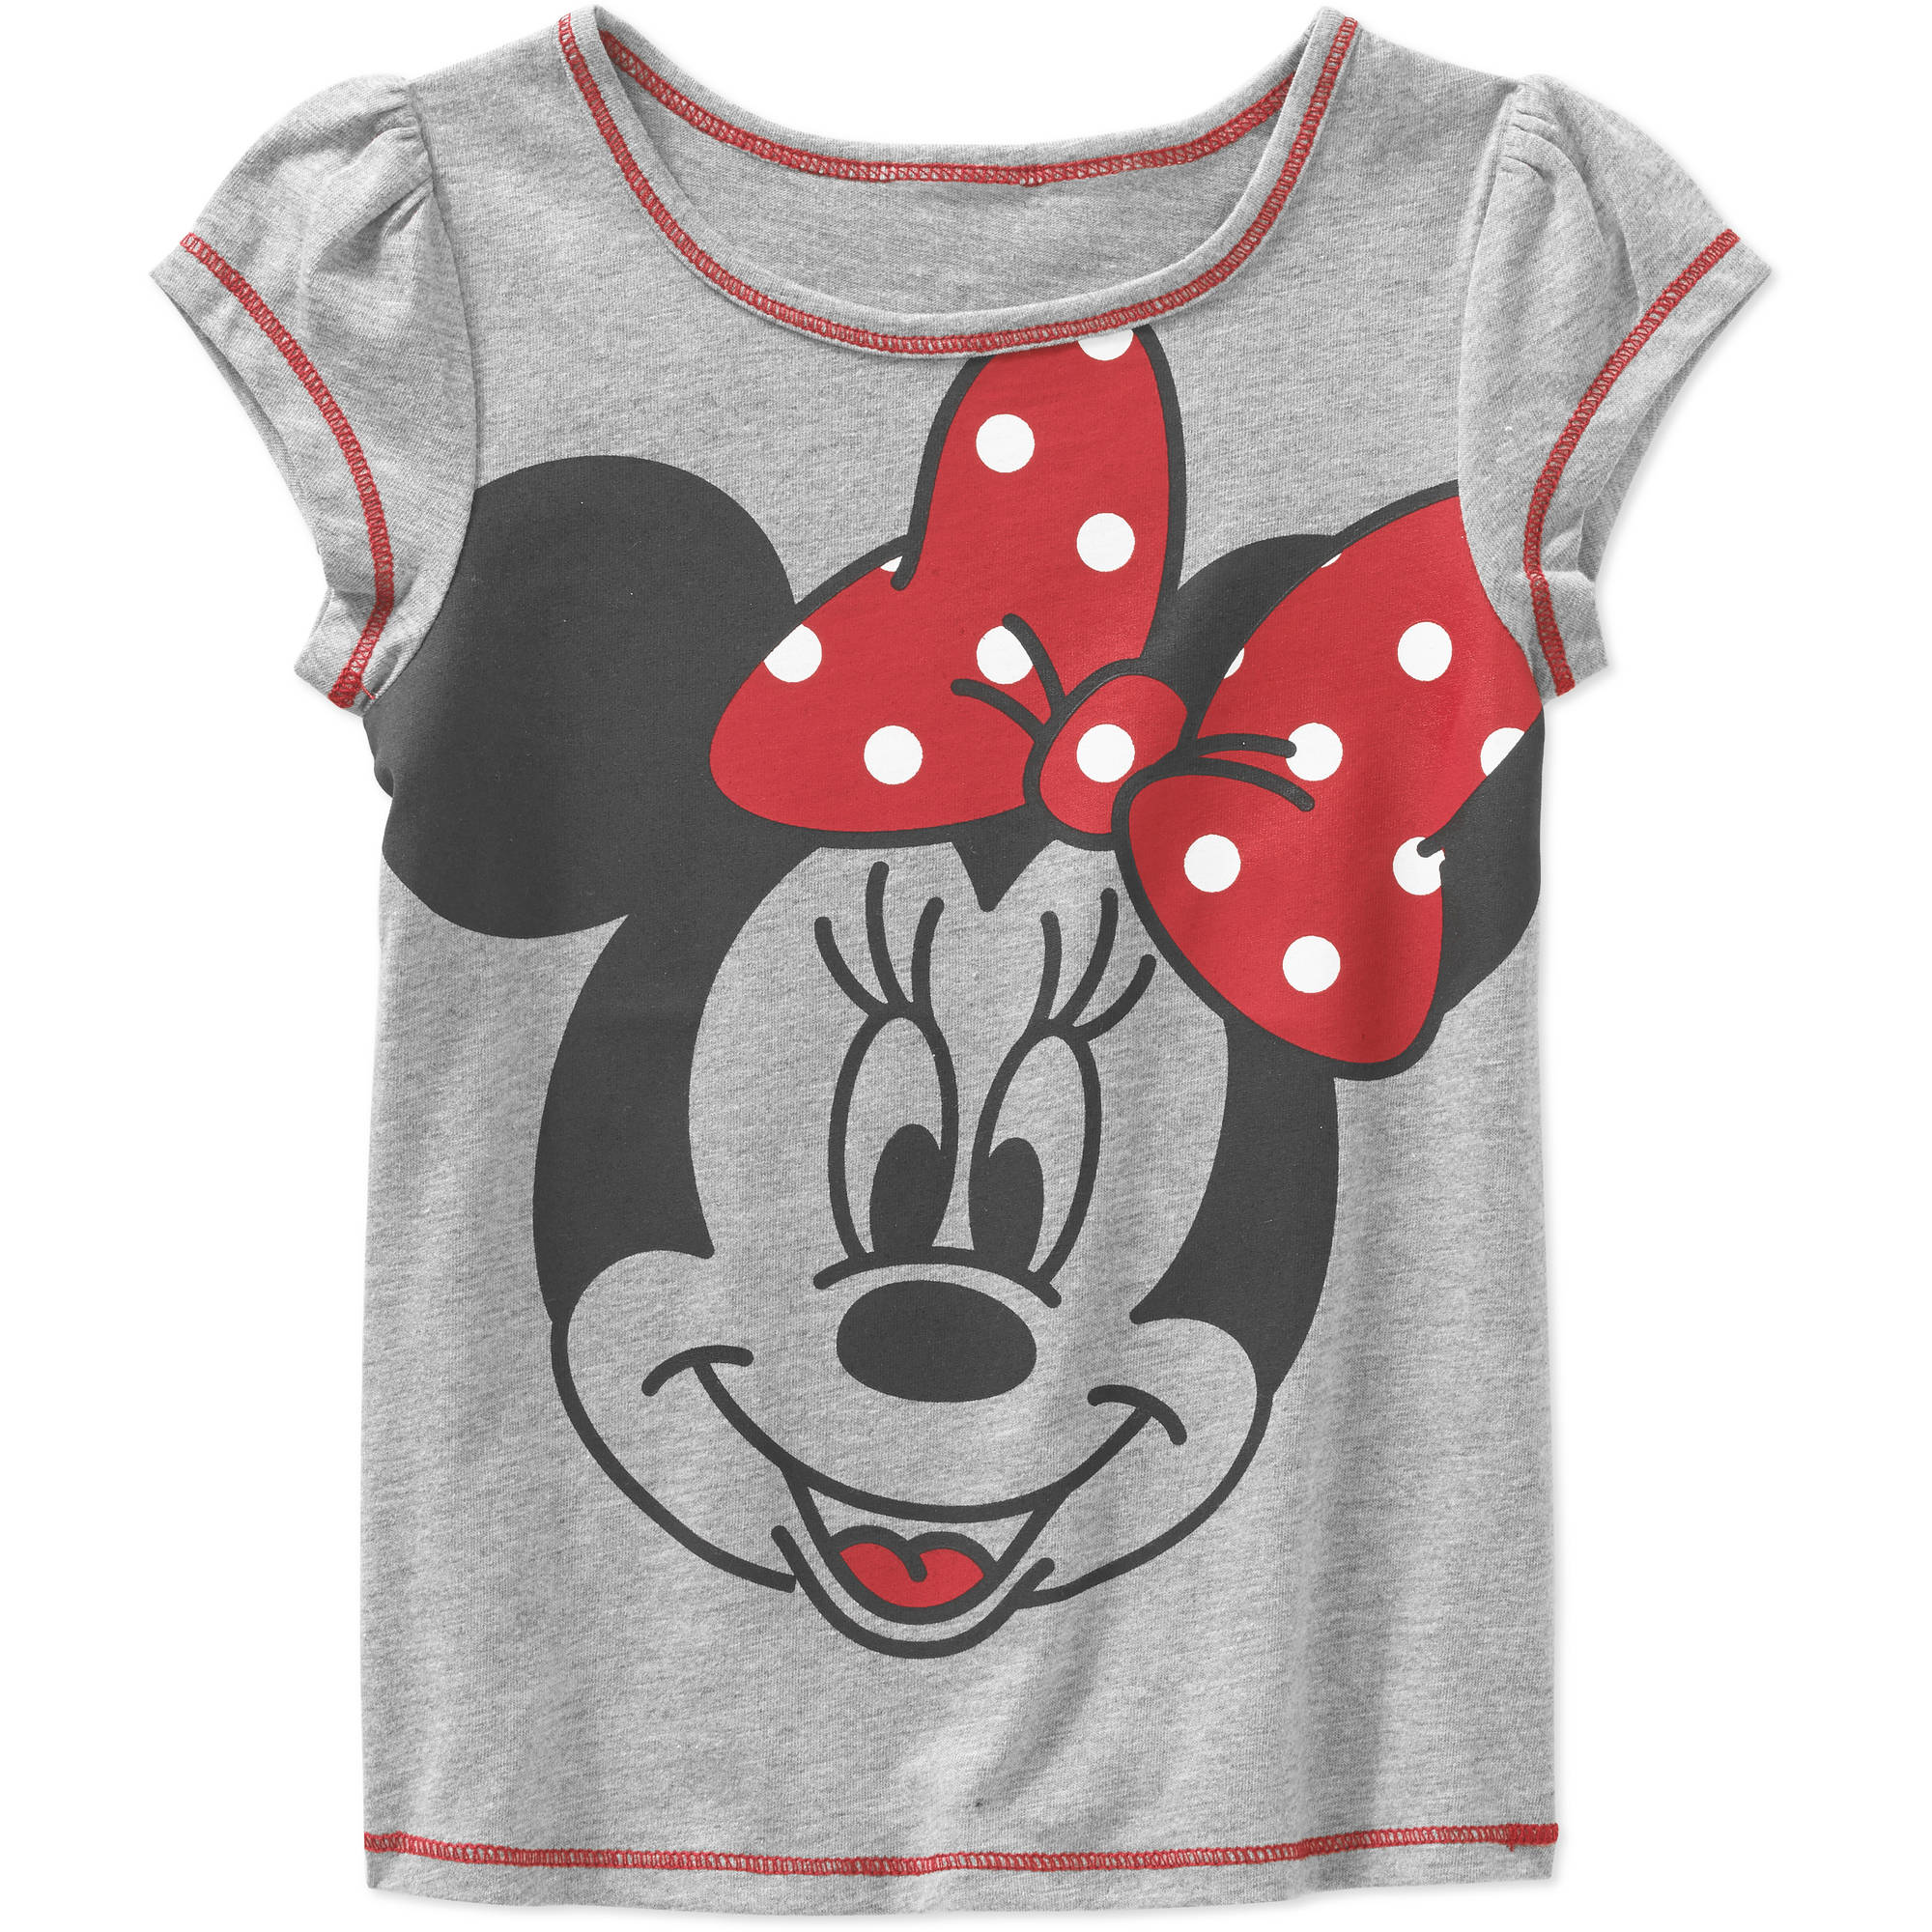 Minnie Mouse Toddler Girls' Short Sleeve Tee